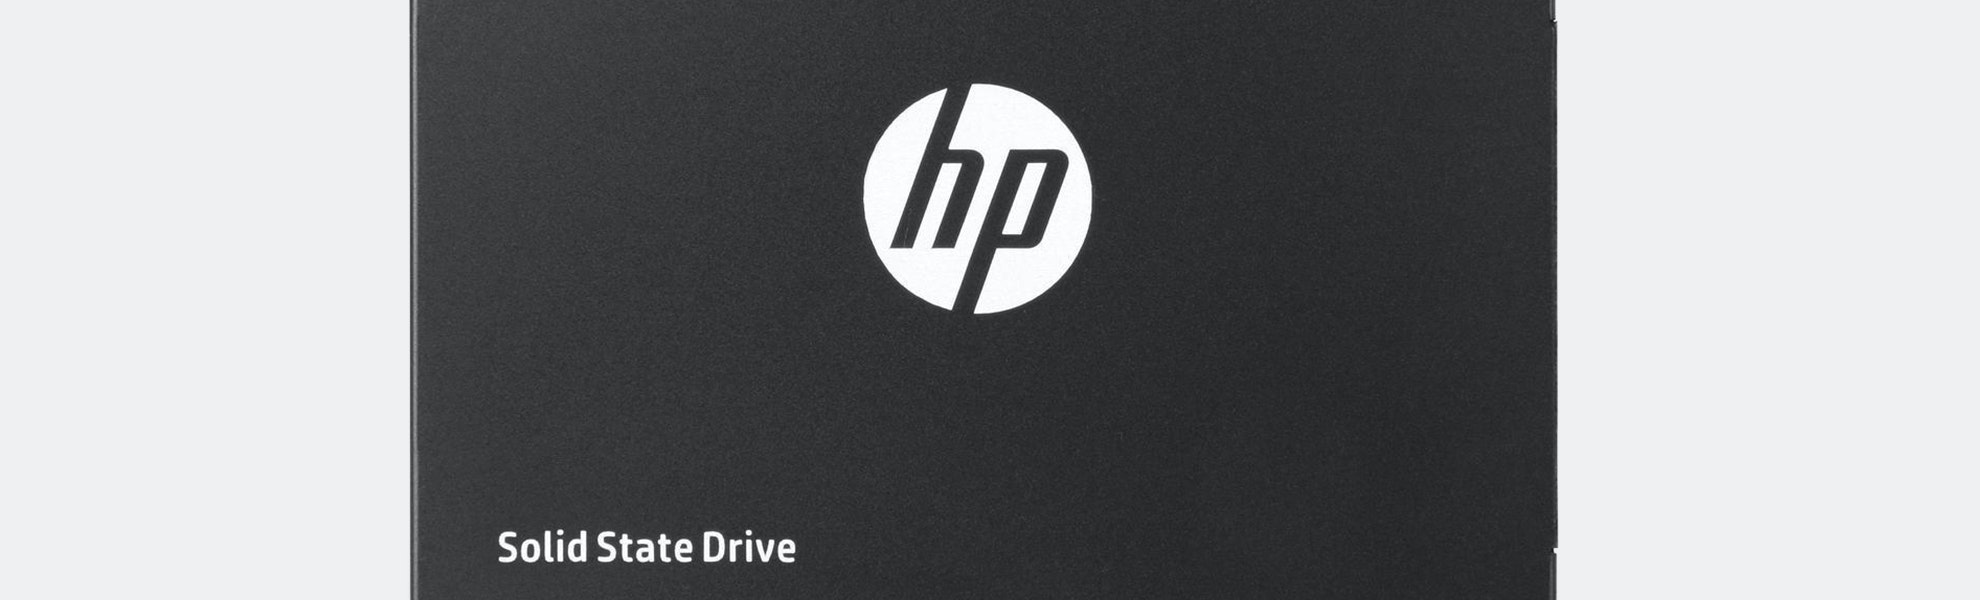 HP S700 Pro Series SSD Drives